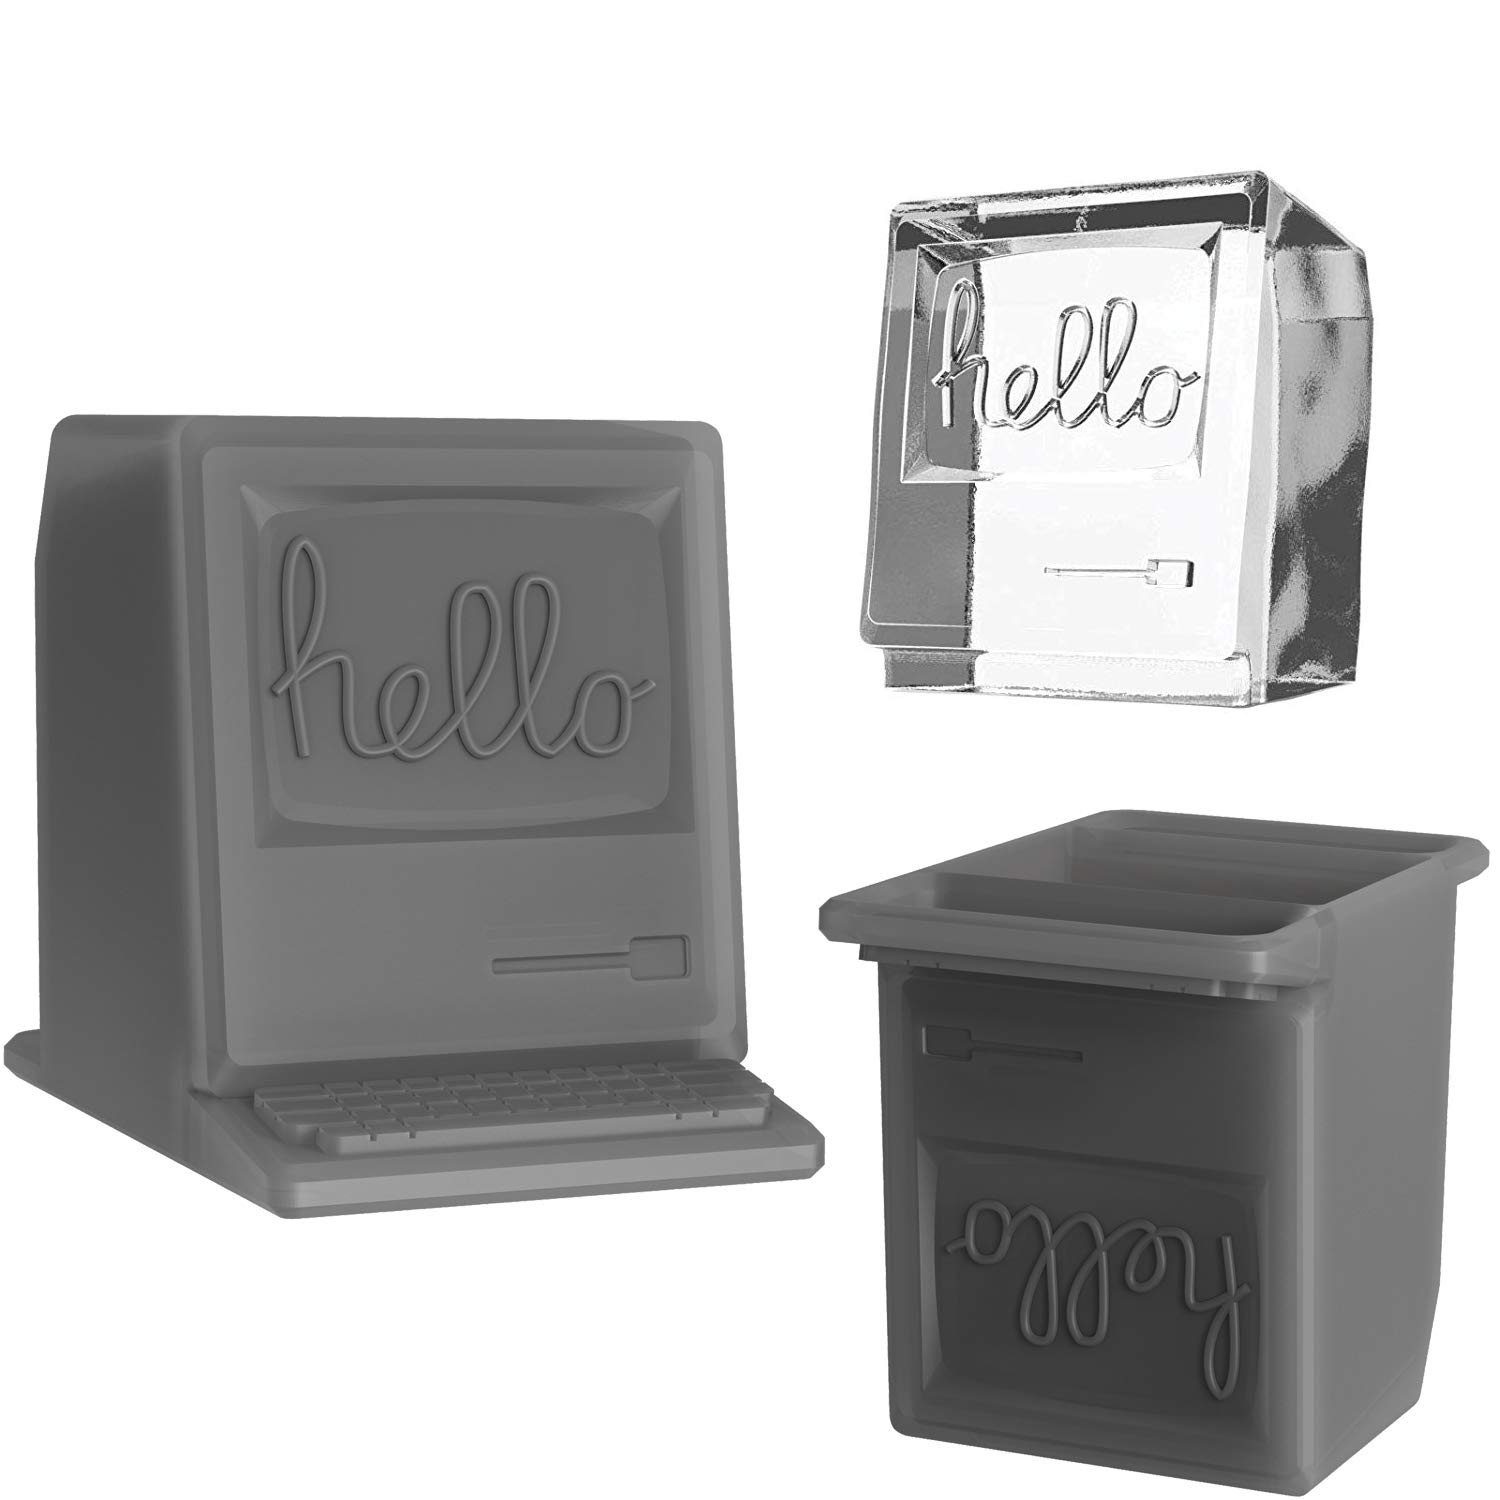 Drink Different by Cozy - Retro Ice Cube Tray, 1984 Mac Computer Shape Mold with Hello & Keyboard, Silicone, Small 2 inch Cubes, Ideal for Drinks/Whiskey, 2 Pack, Spacy Grey